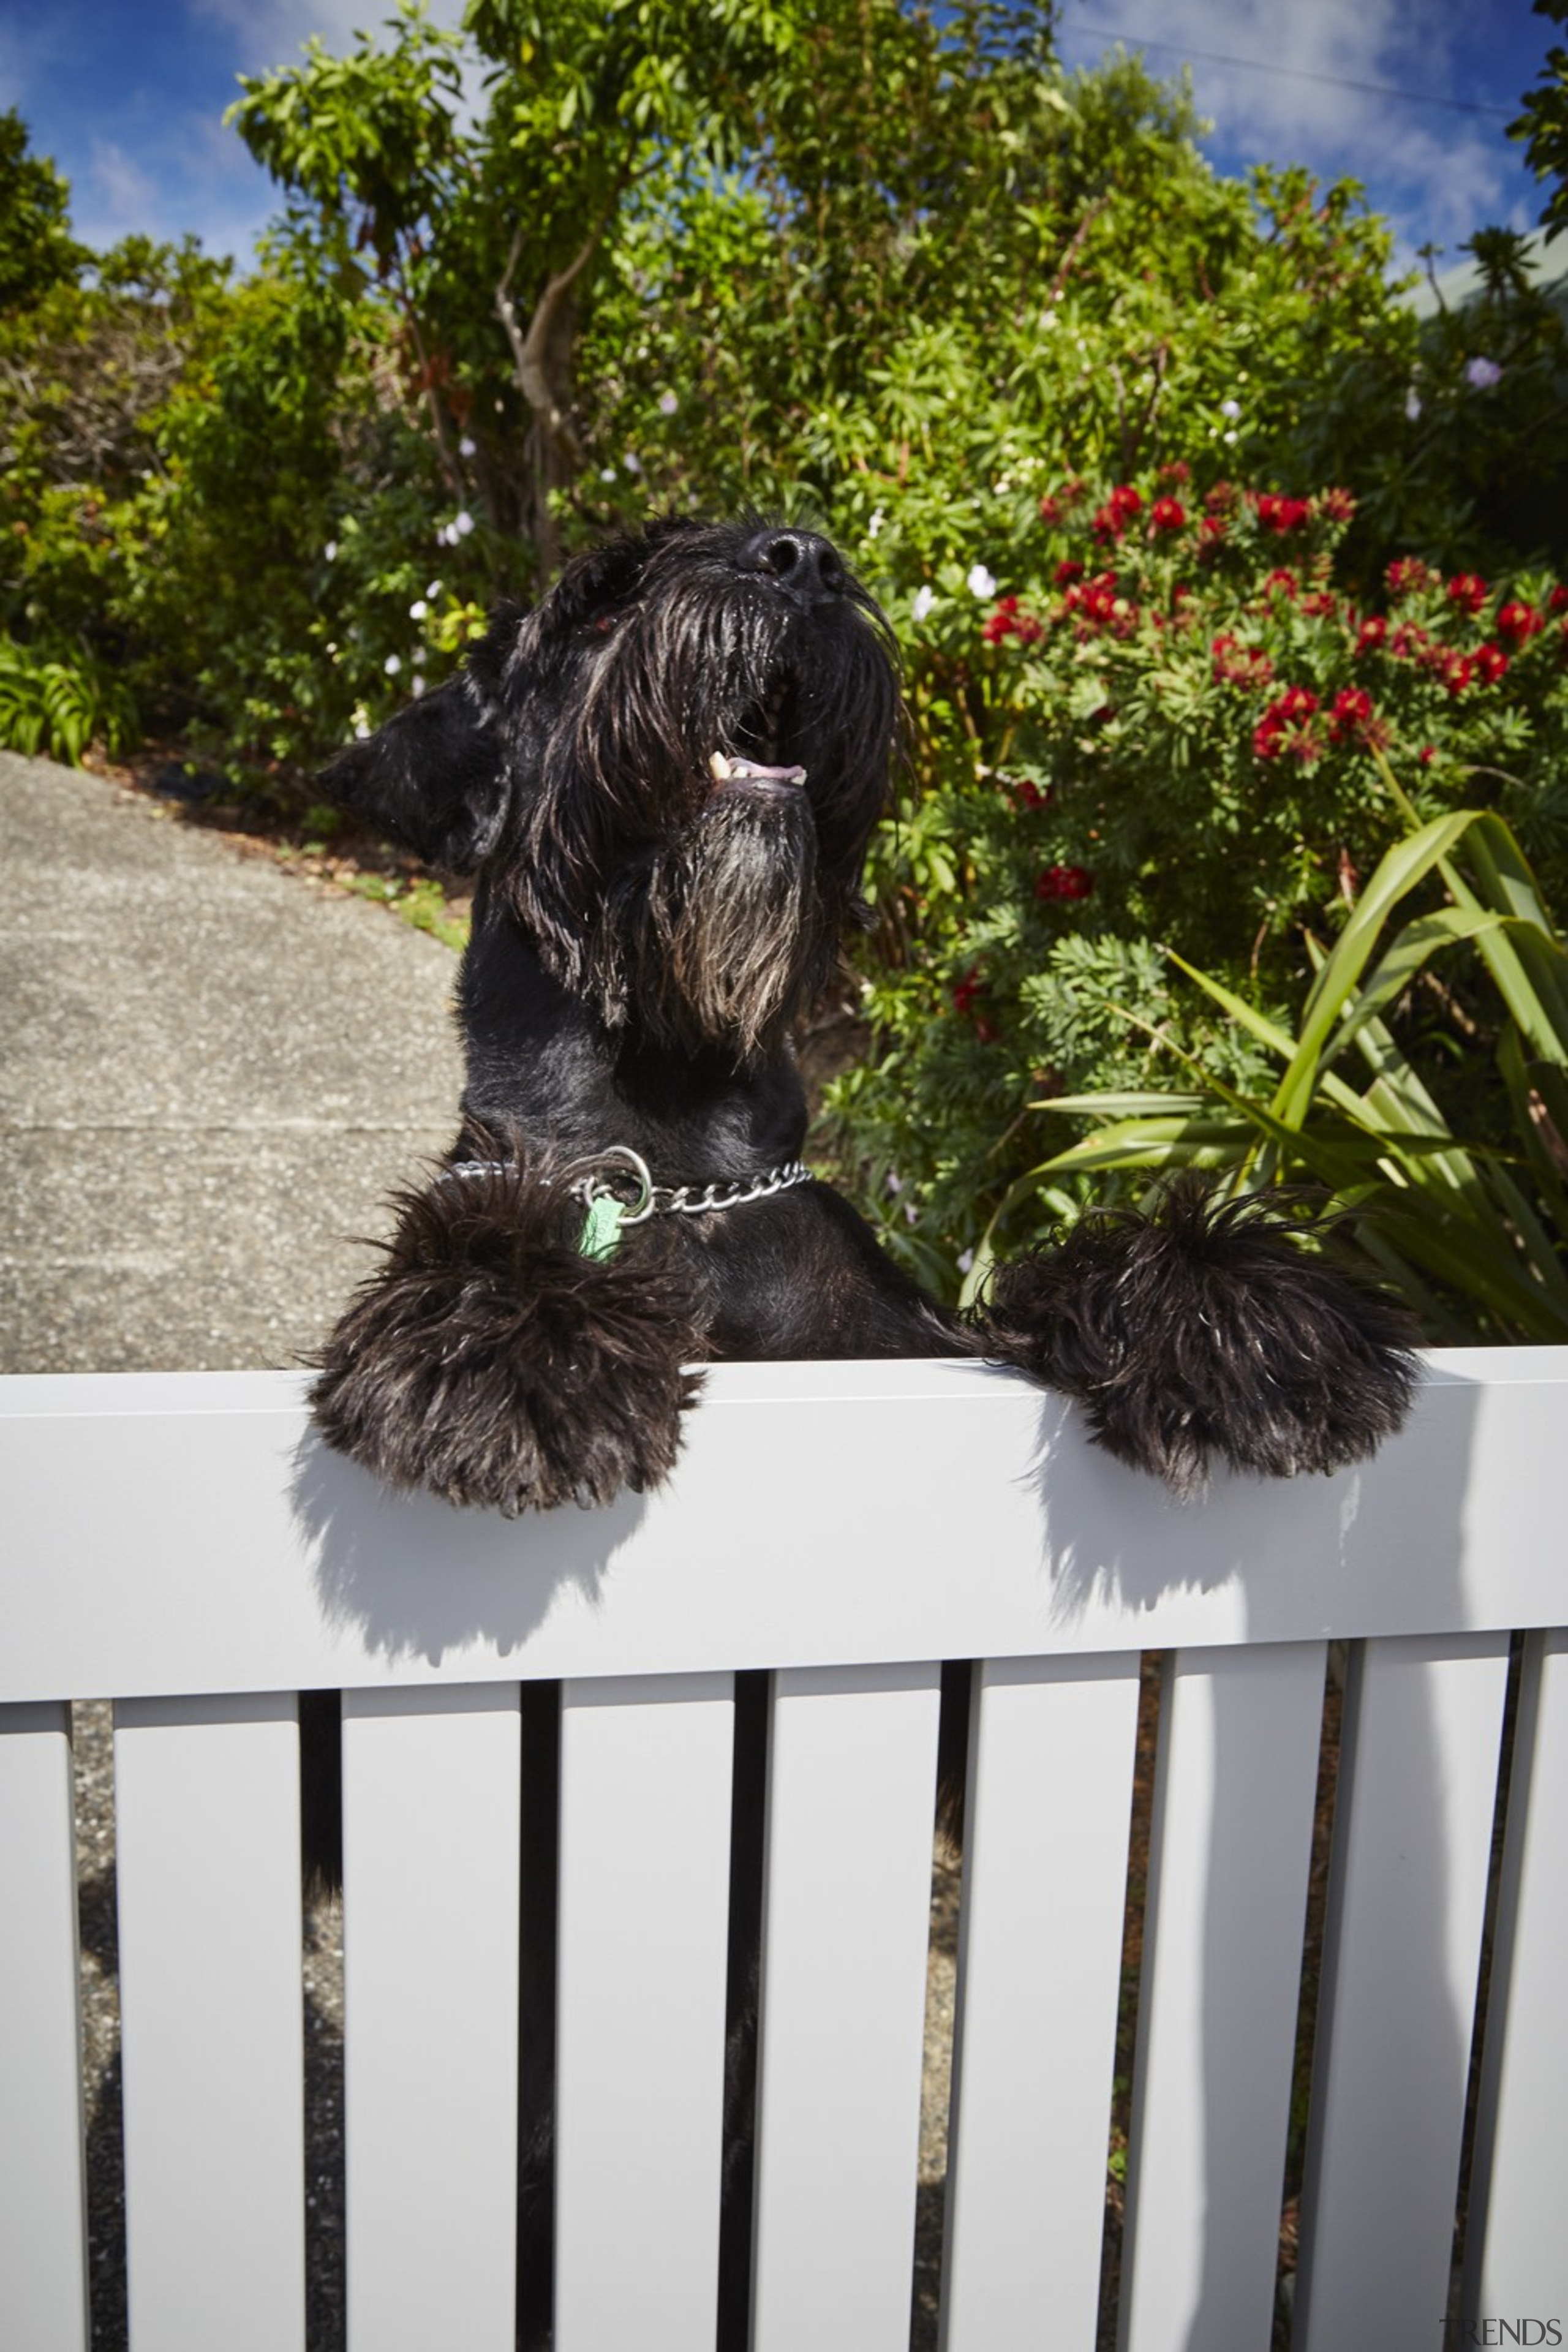 The owners are thrilled with the finished look dog, dog breed, dog like mammal, portuguese water dog, schapendoes, spanish water dog, tree, brown, white